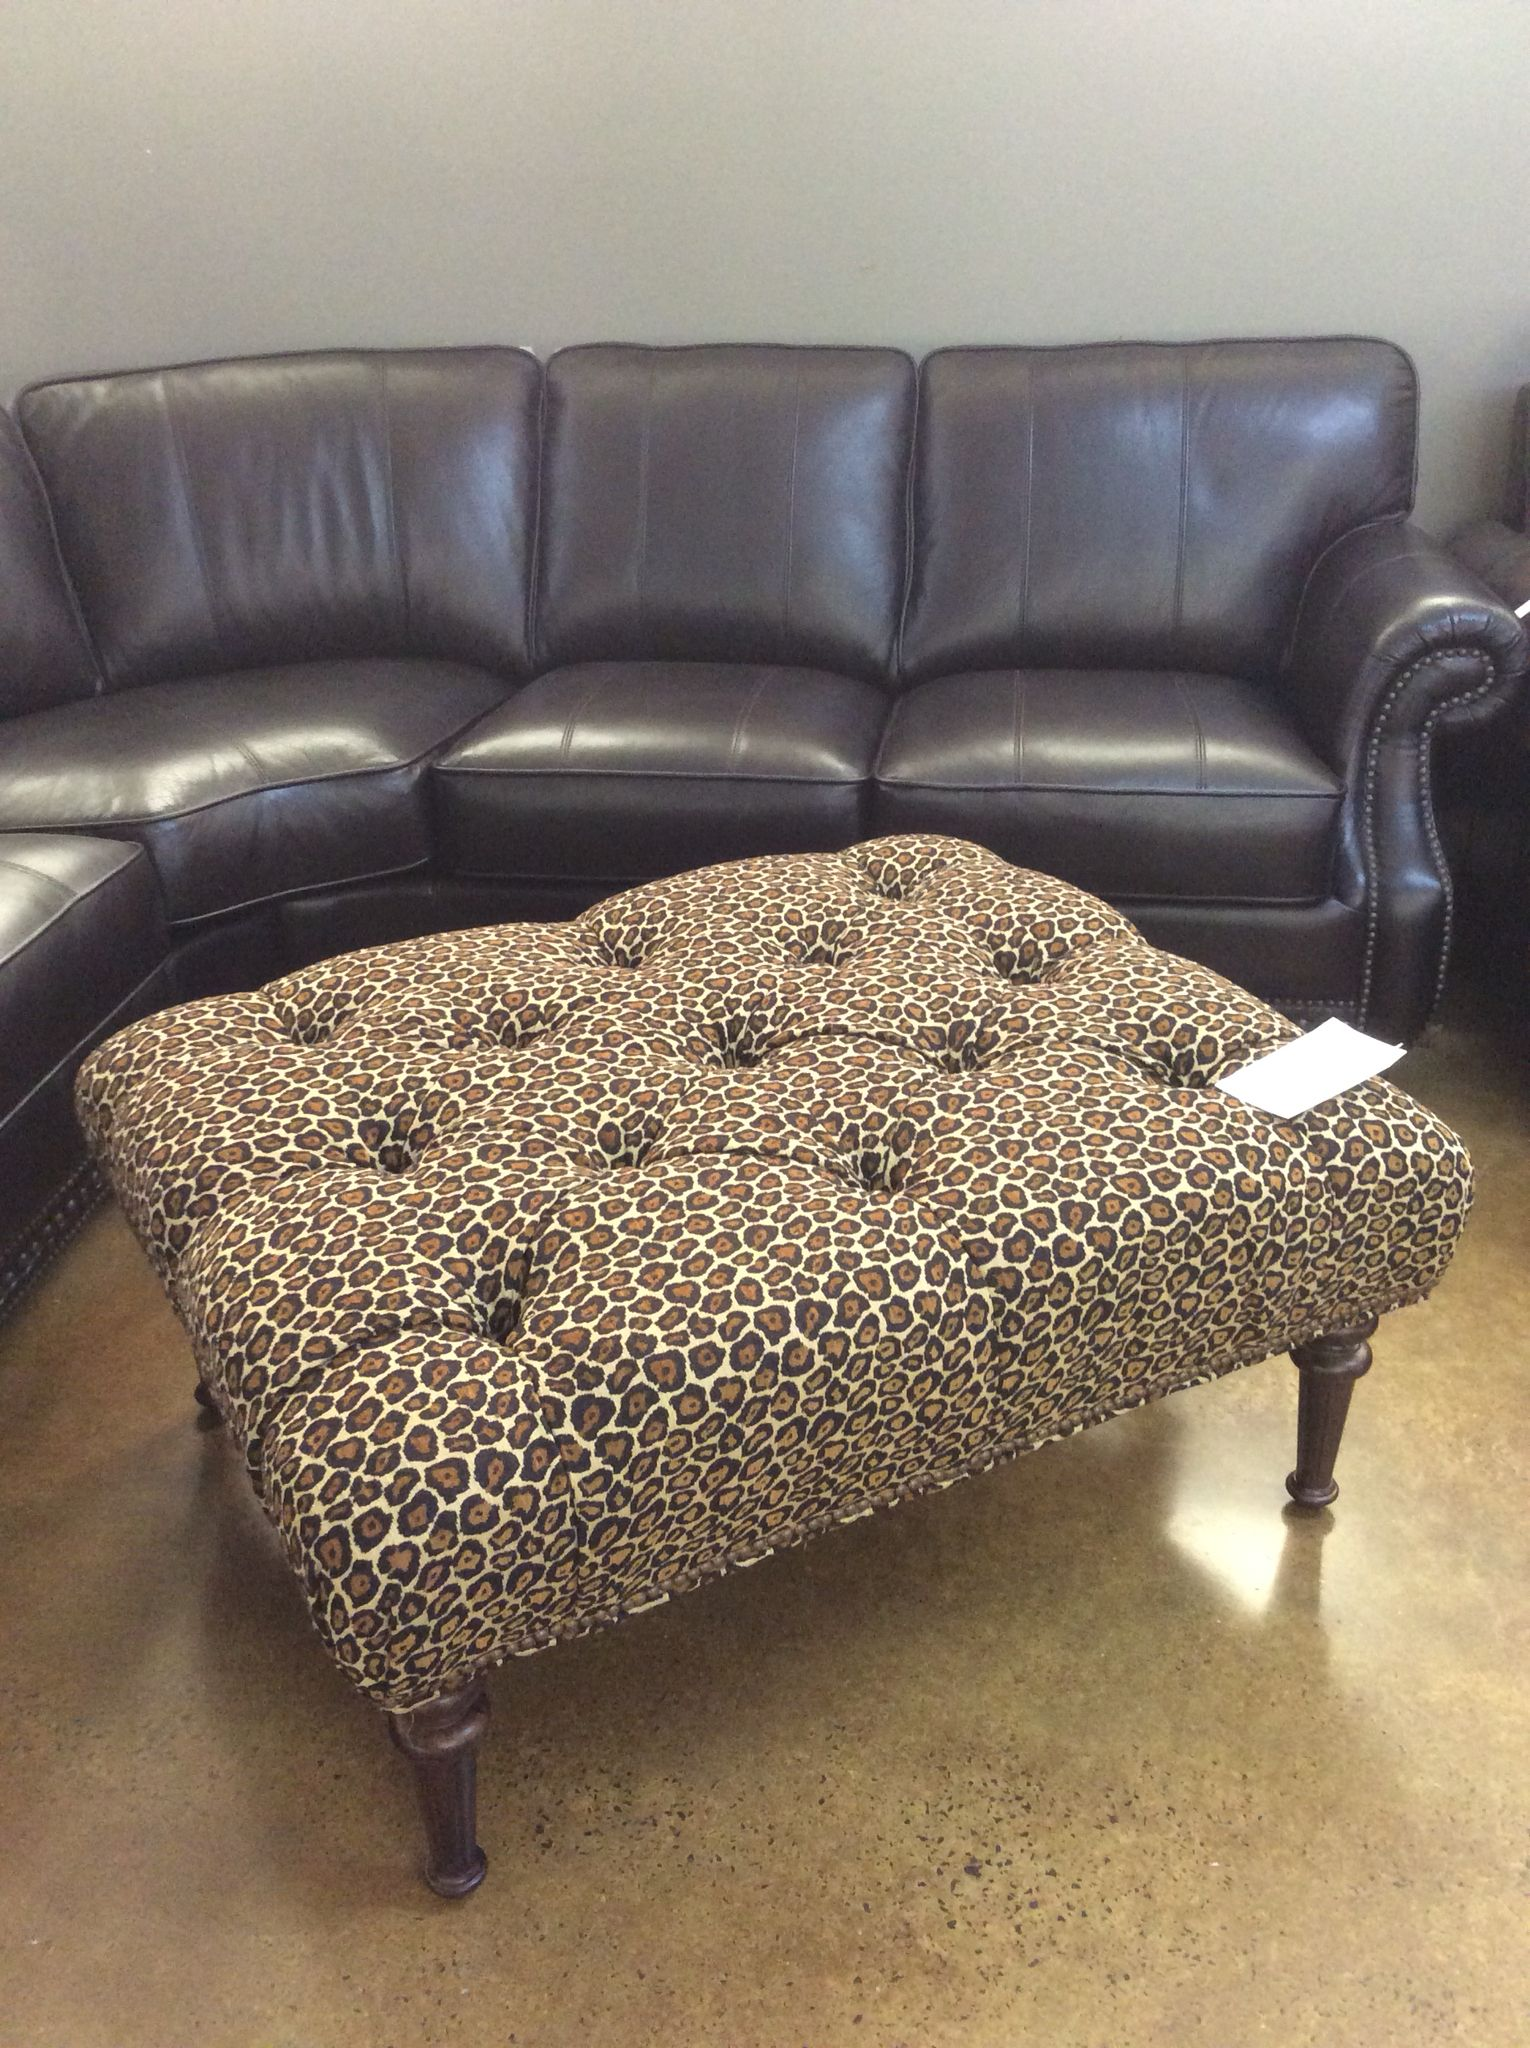 Need An Exotic Accent For Your Leather Furniture? This Clayton Marcus  Leopard Print Ottoman Is